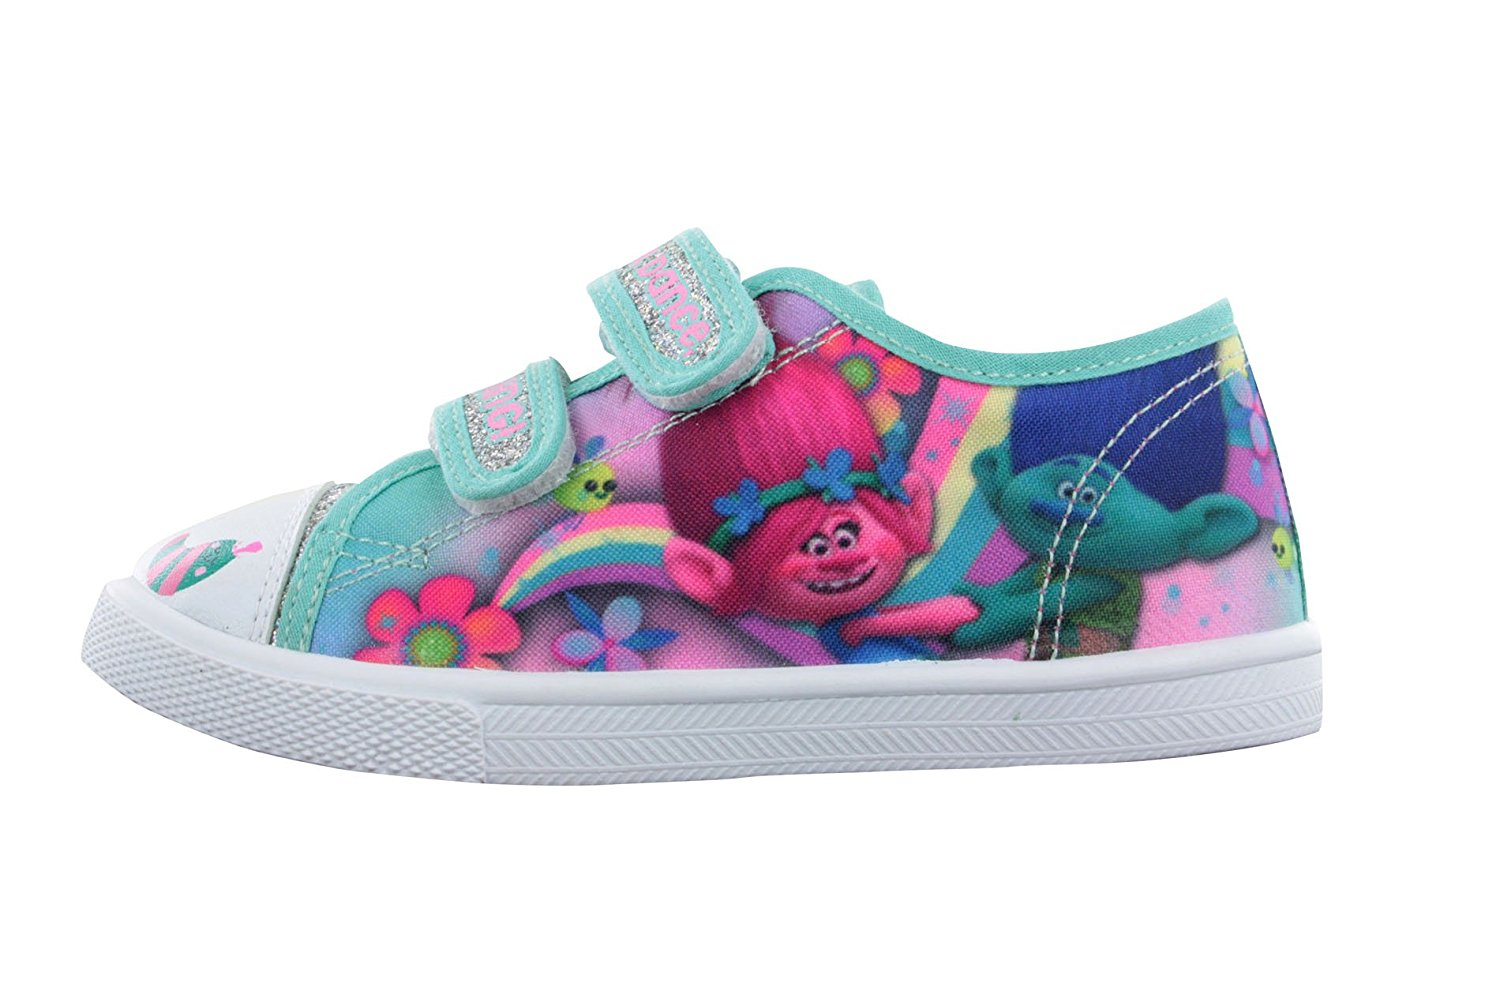 7bcd134fba24 Get Quotations · Trolls Girls Green Pink Silver Glitter Canvas Trainers  Sport Shoes UK Sizes 6-12